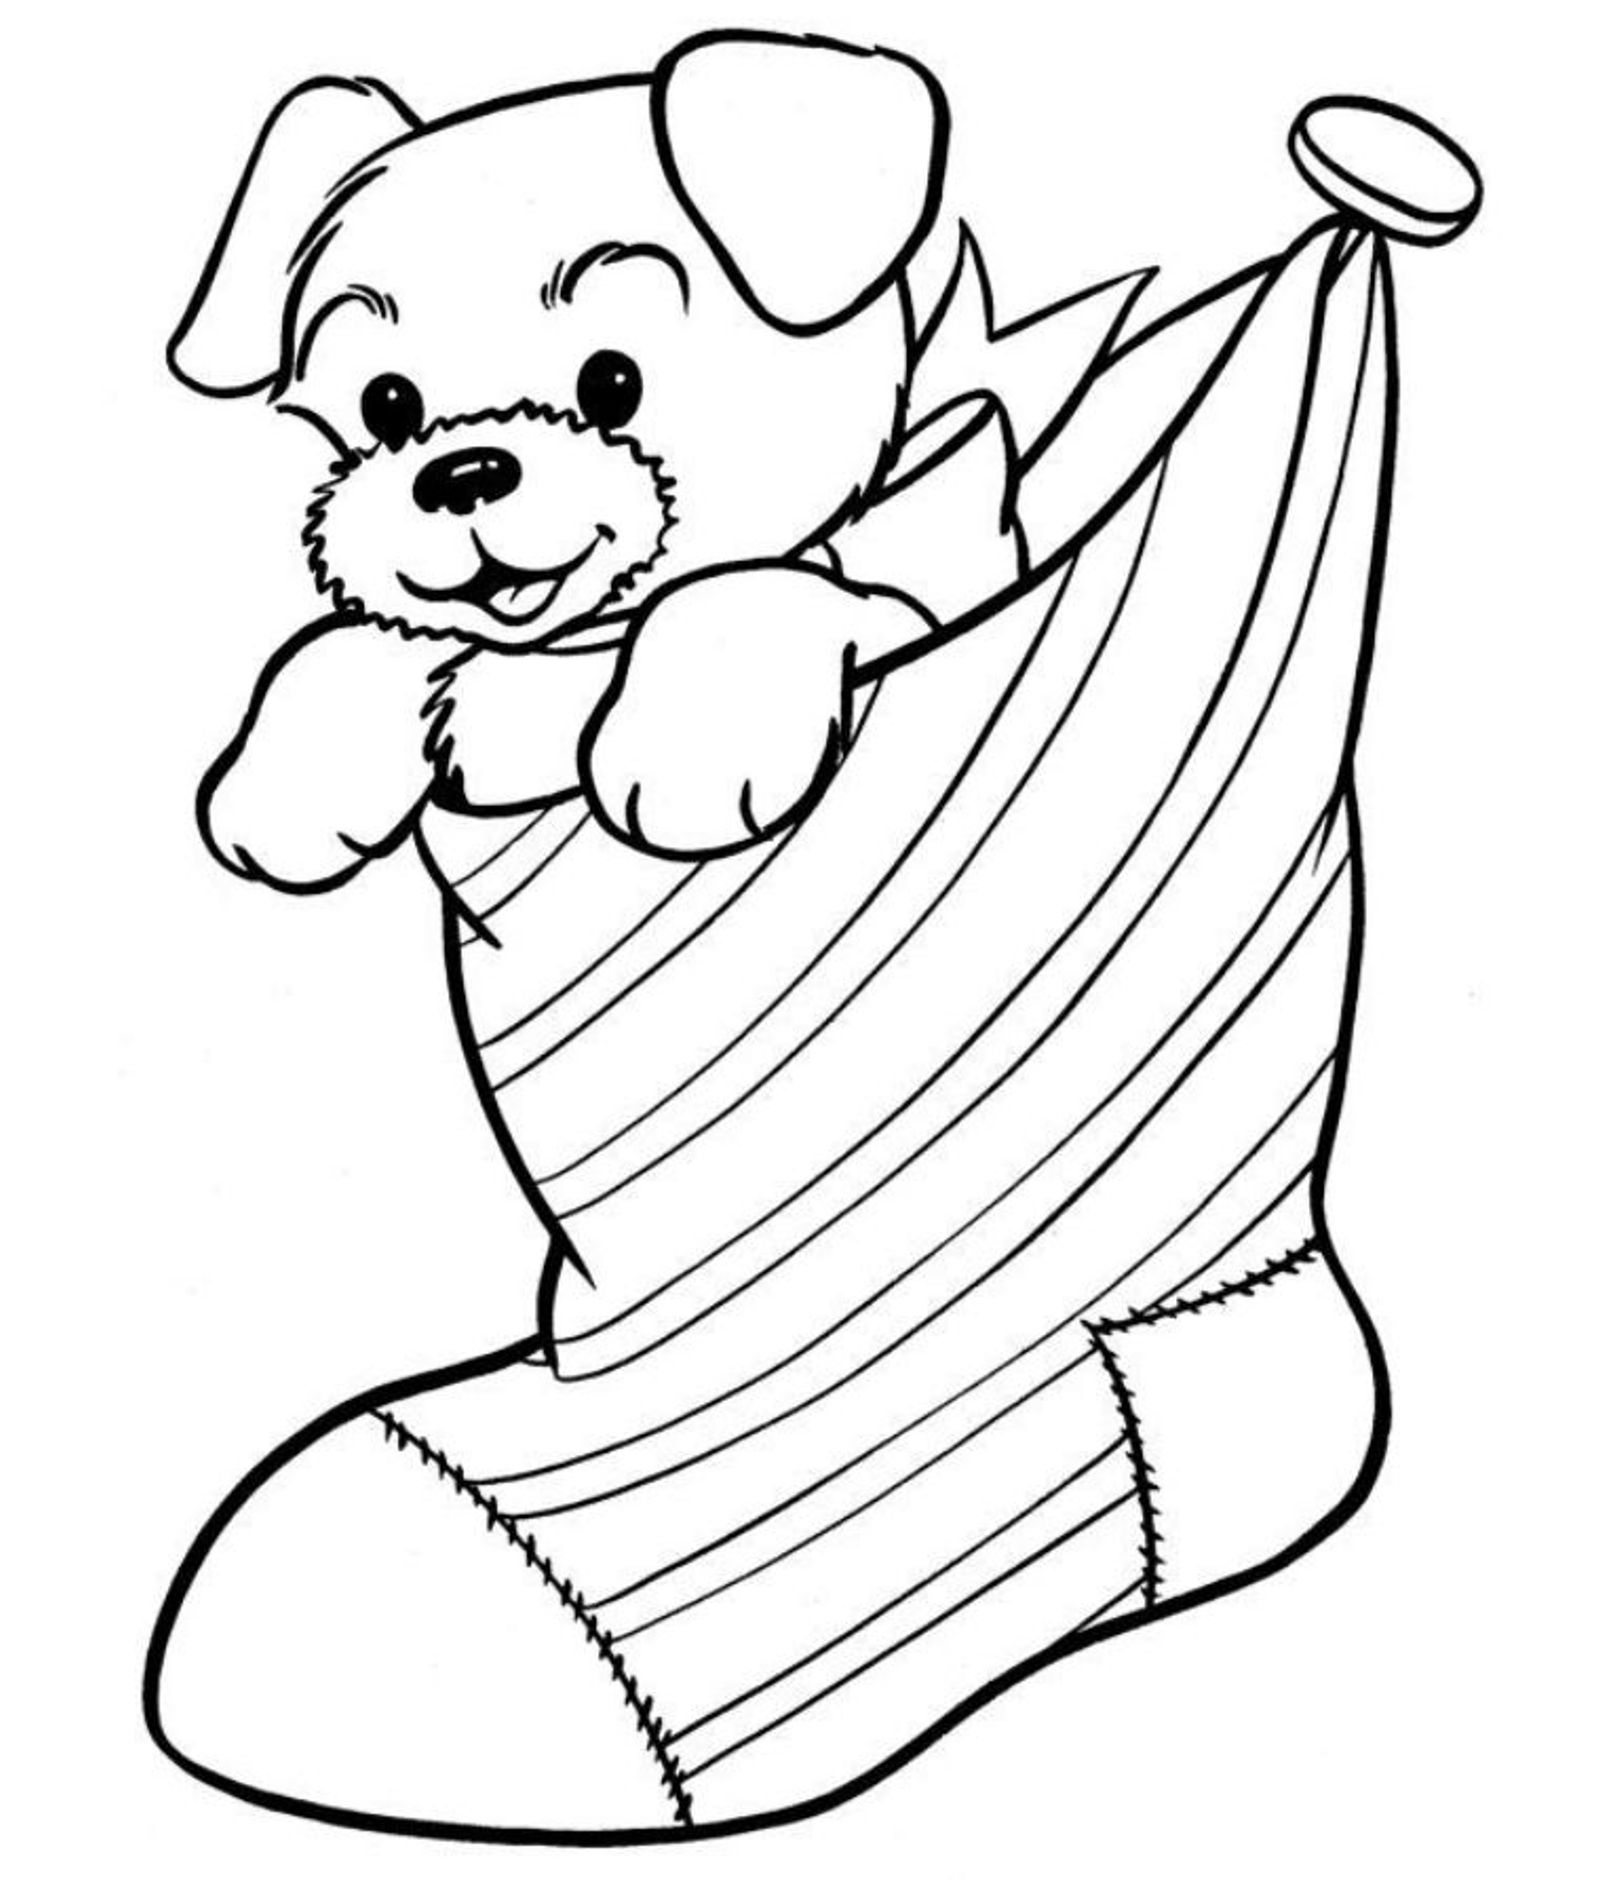 1620x1880 Christmas Puppy Coloring Pages Printable In Tiny Draw Page